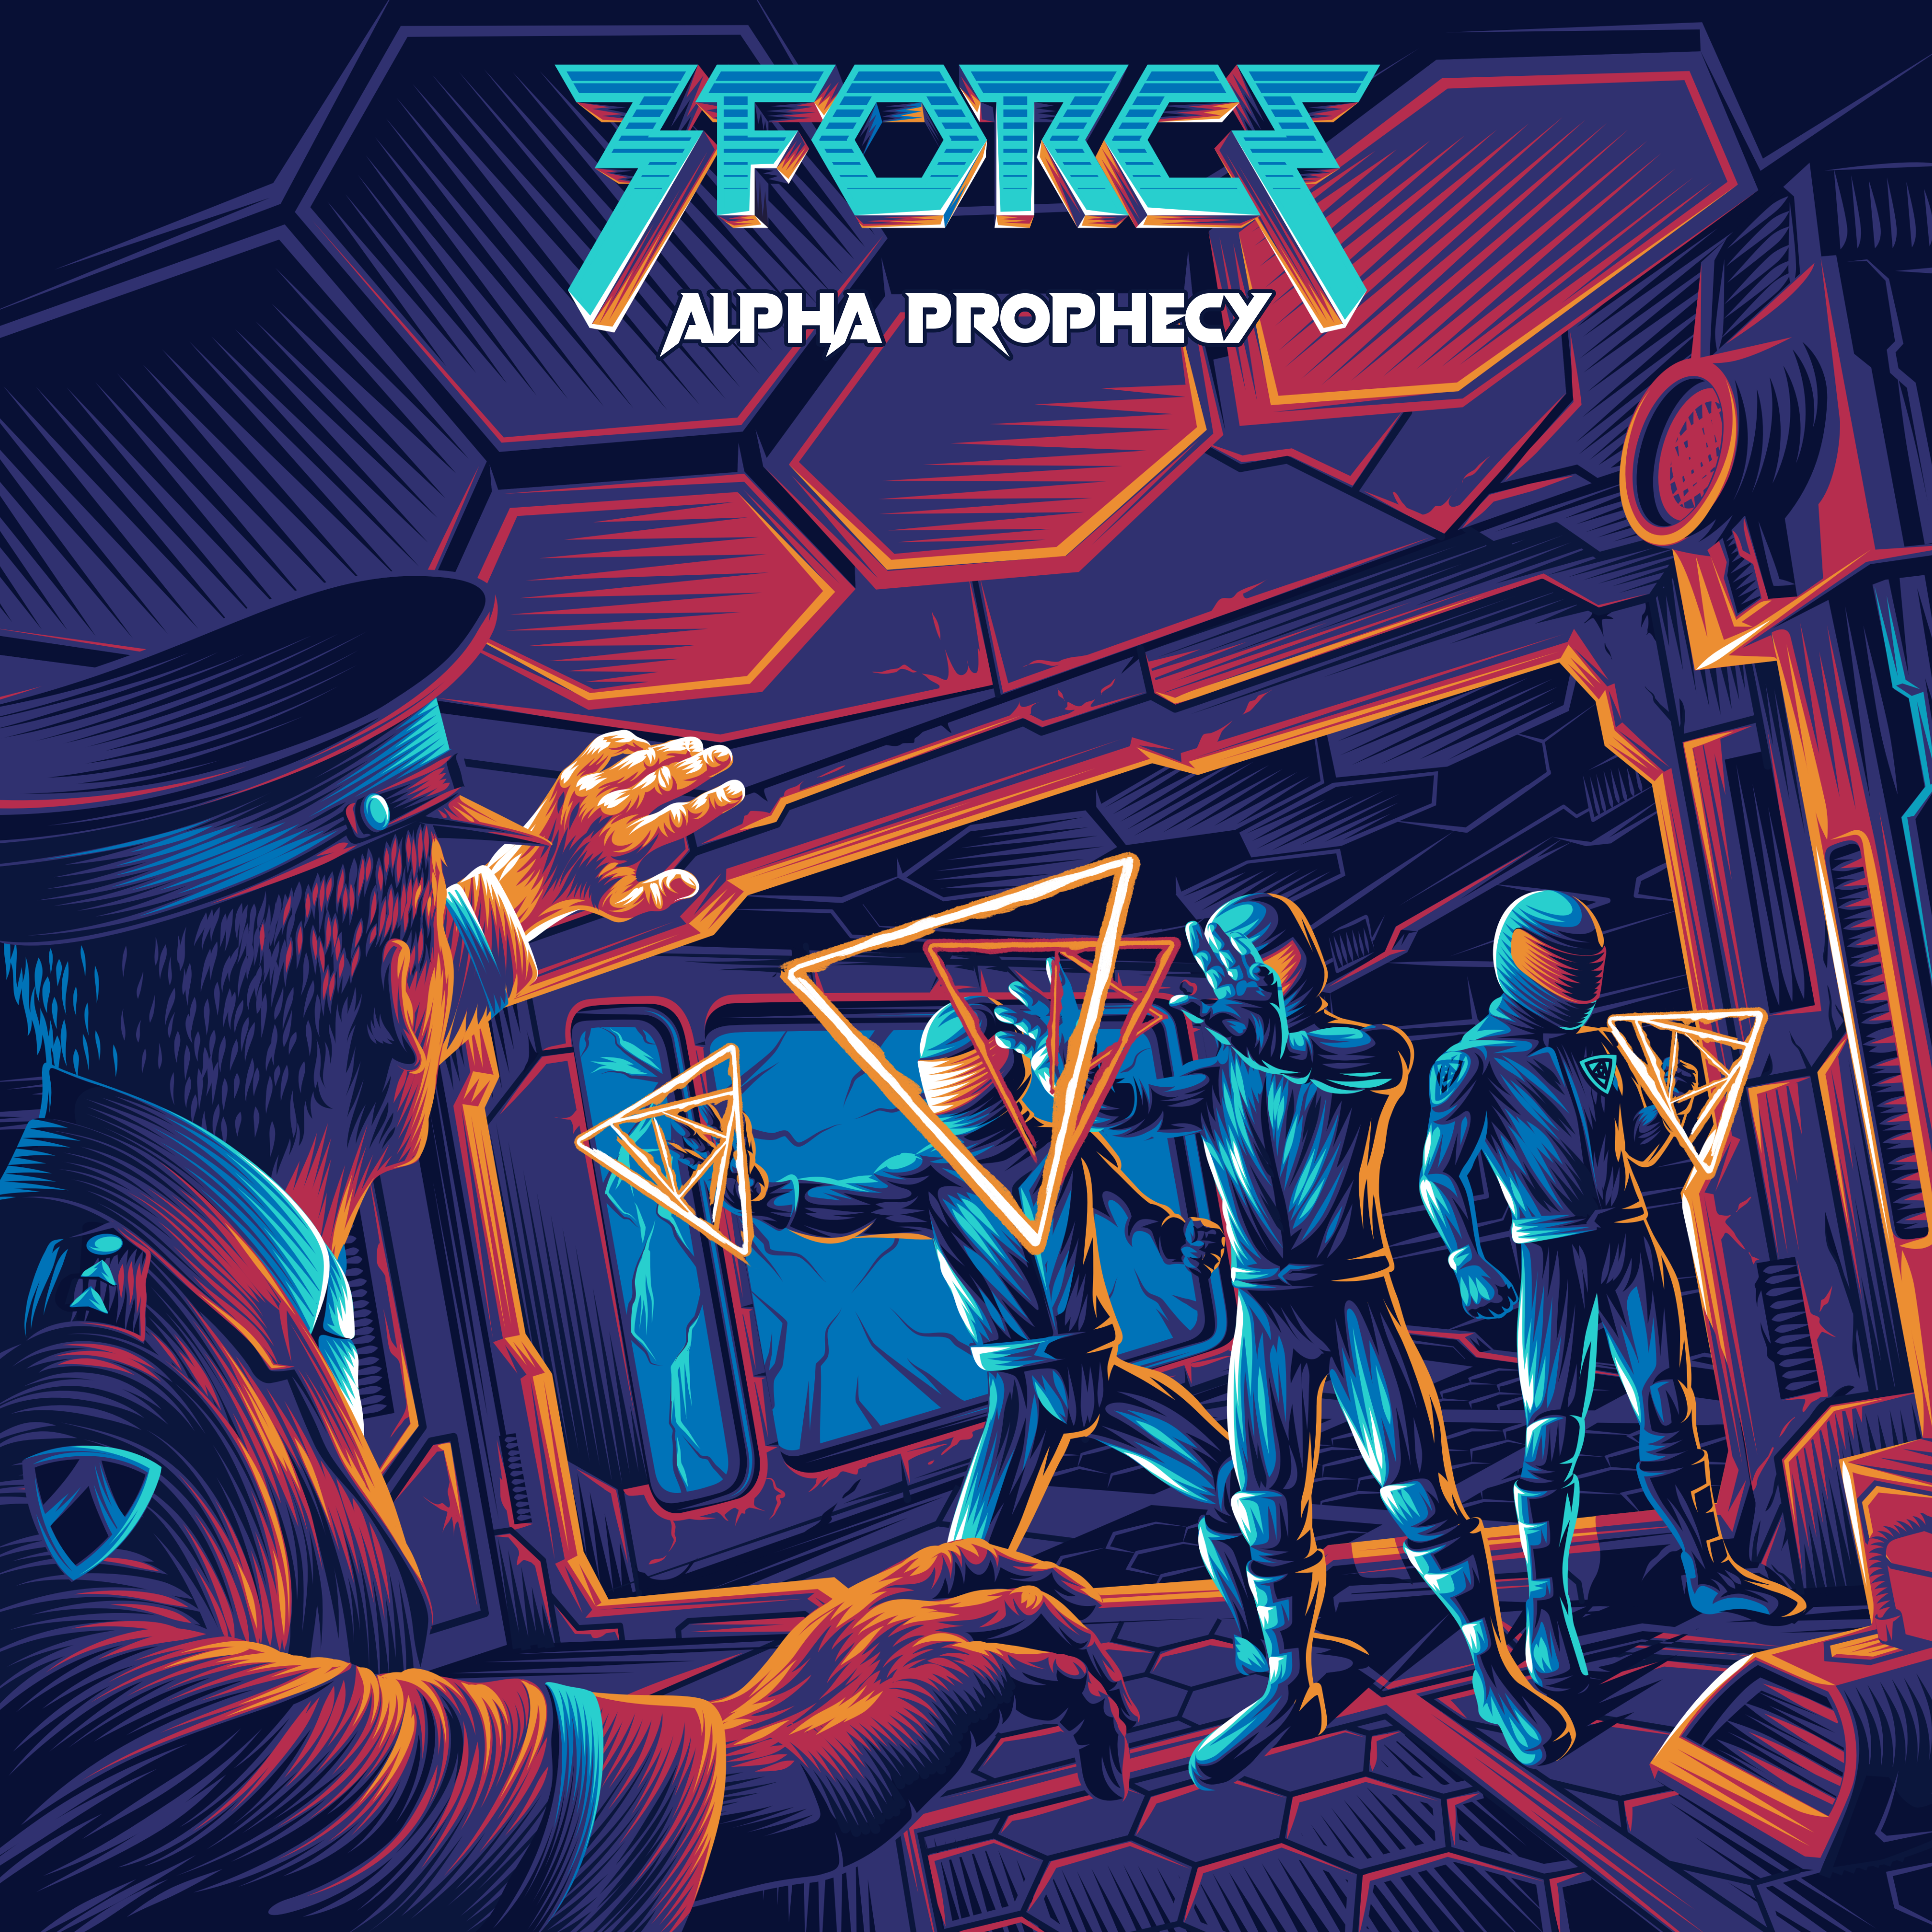 3FORCE - Alpha Prophecy (Single) Image